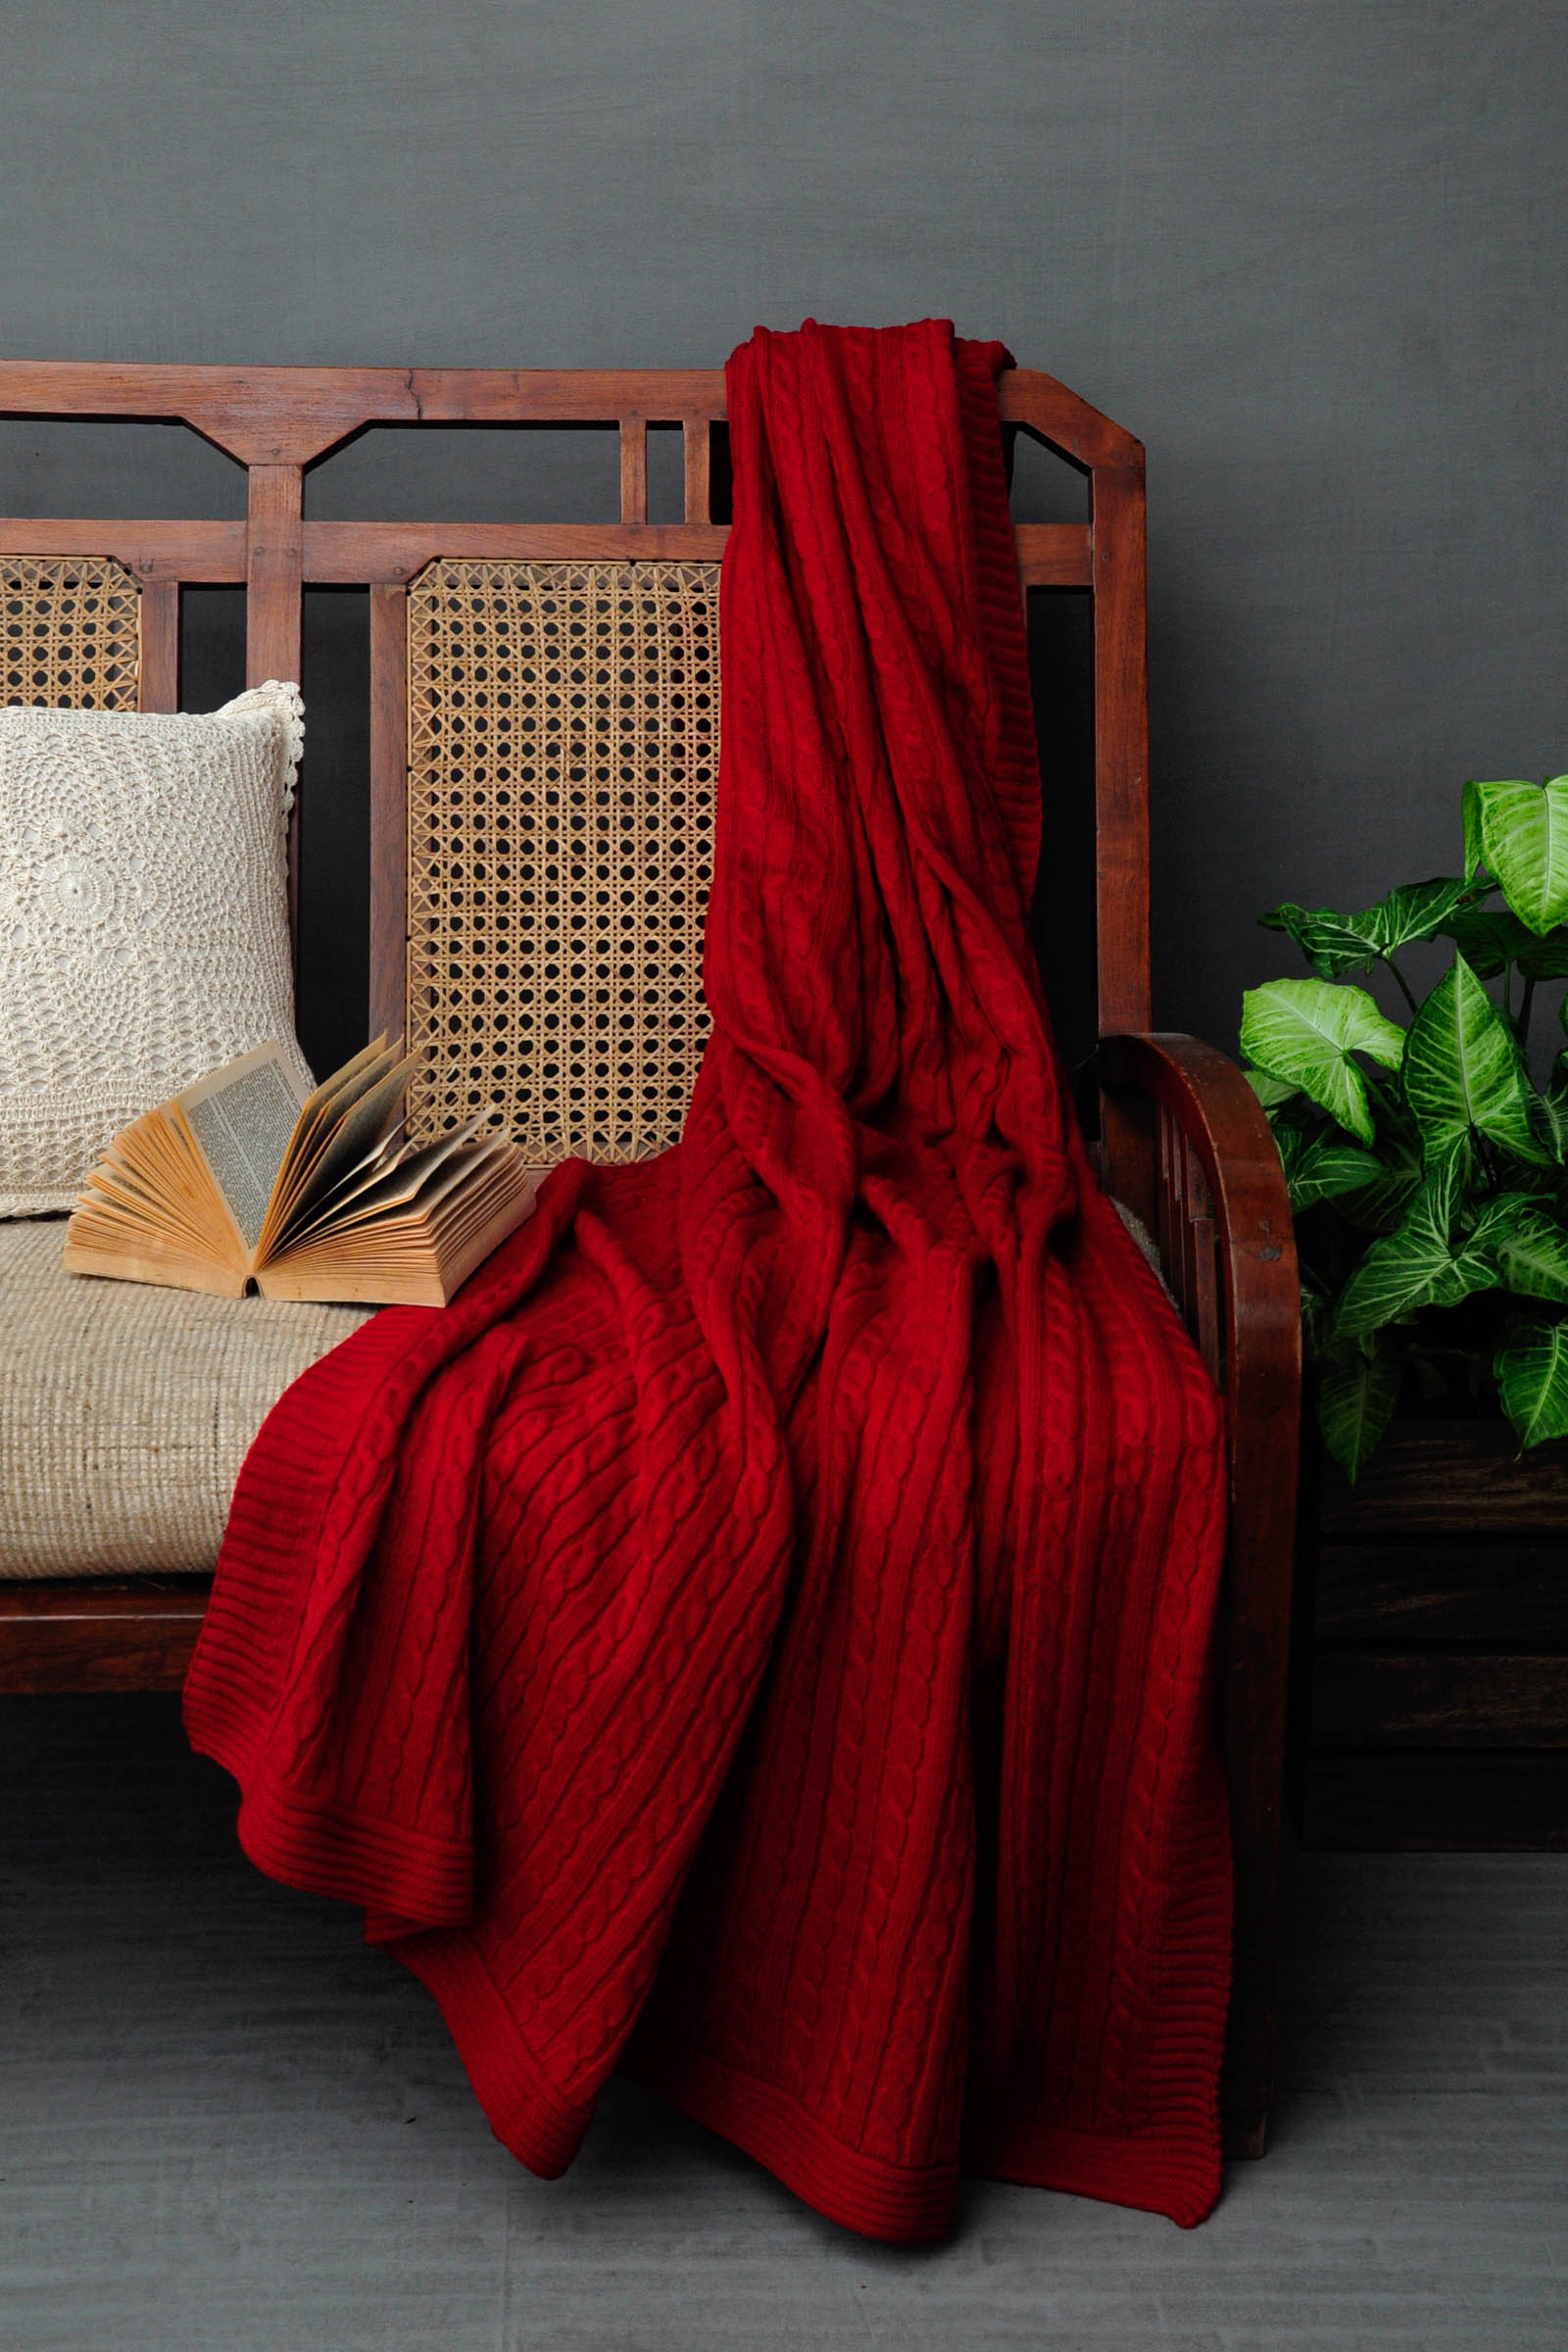 Woolen Throws Red